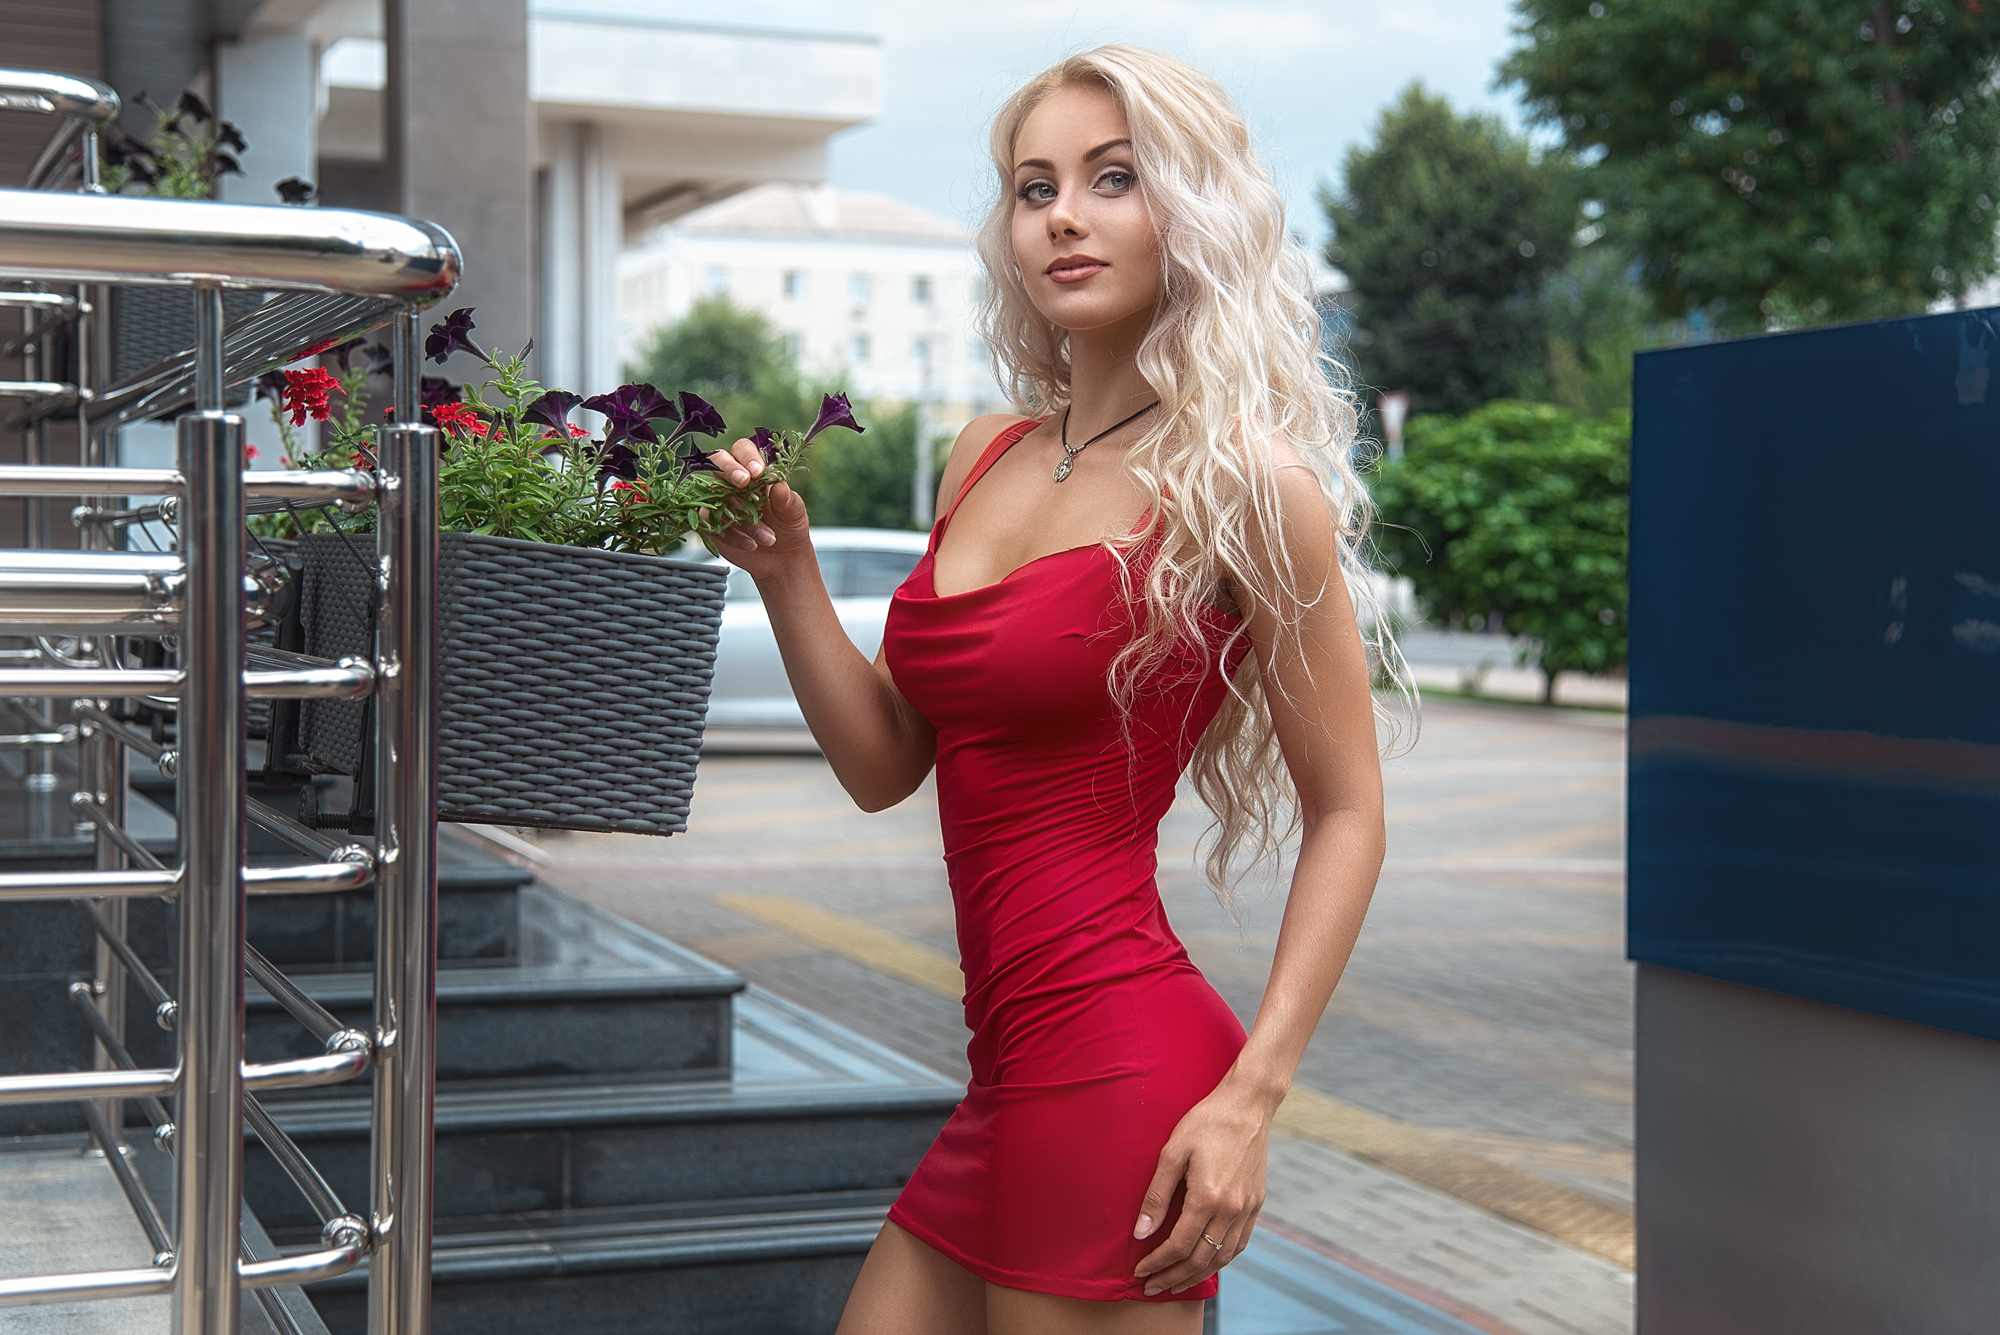 These Hot Chicks In Tight Dresses Will Make Your Temperature Rise